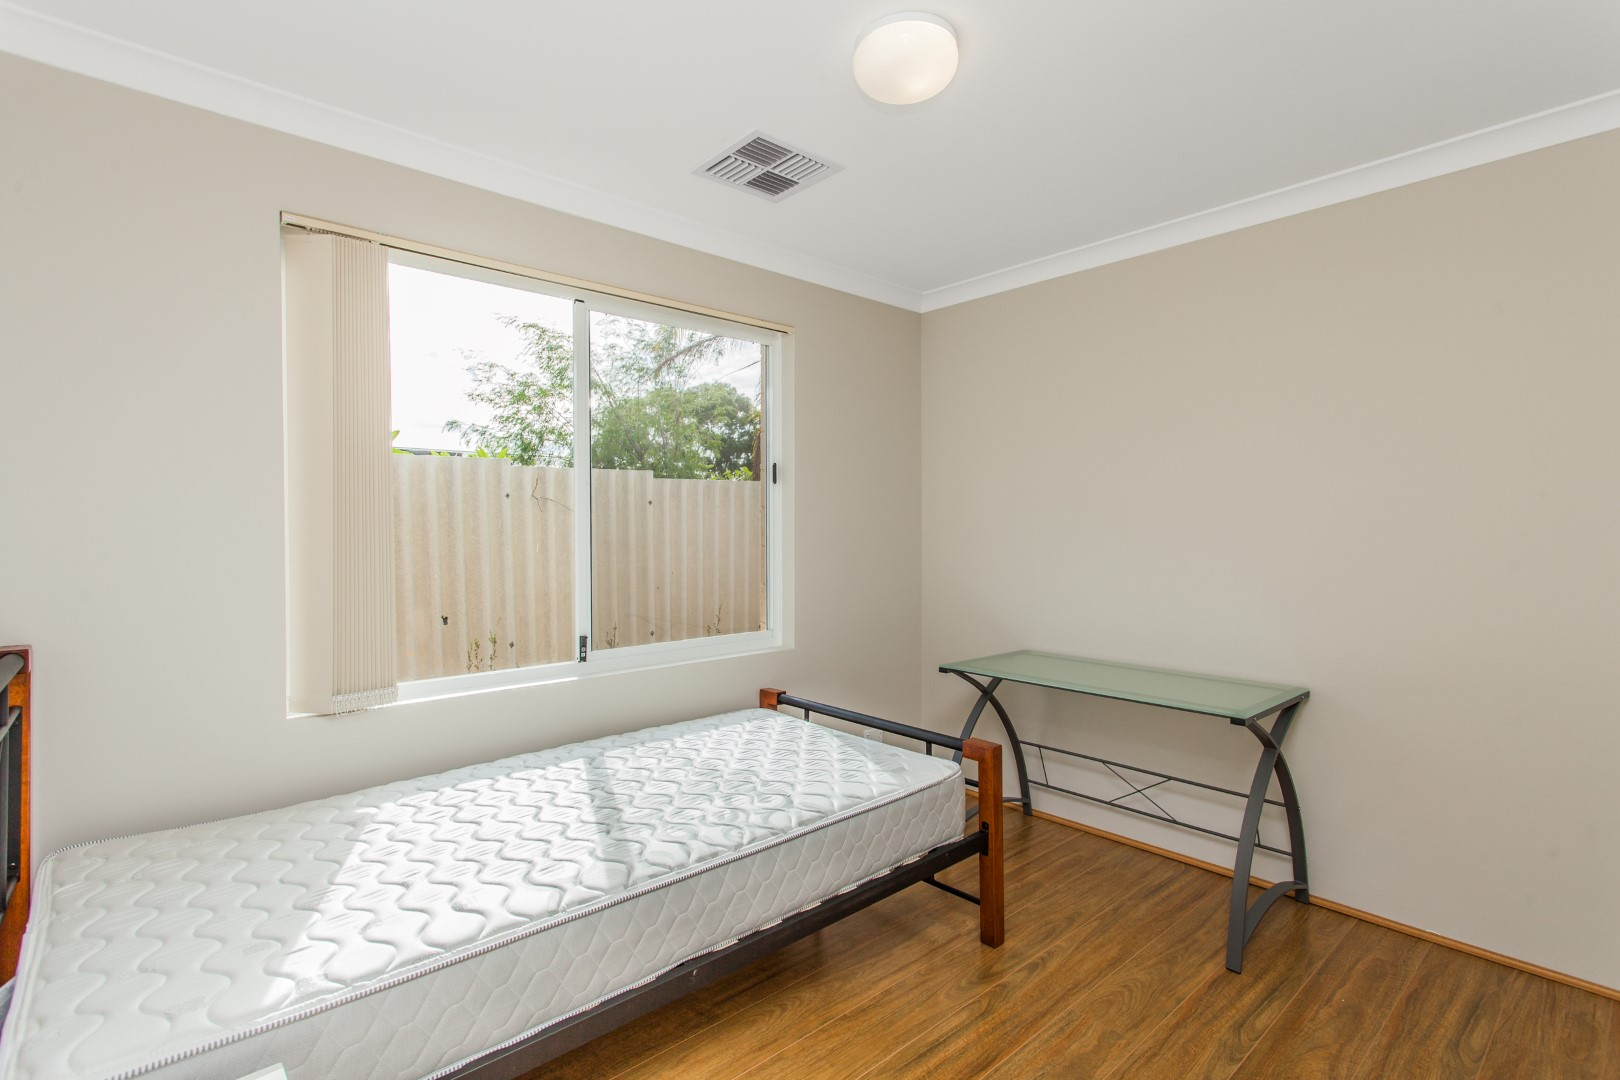 Room 6/21A Bersica Court